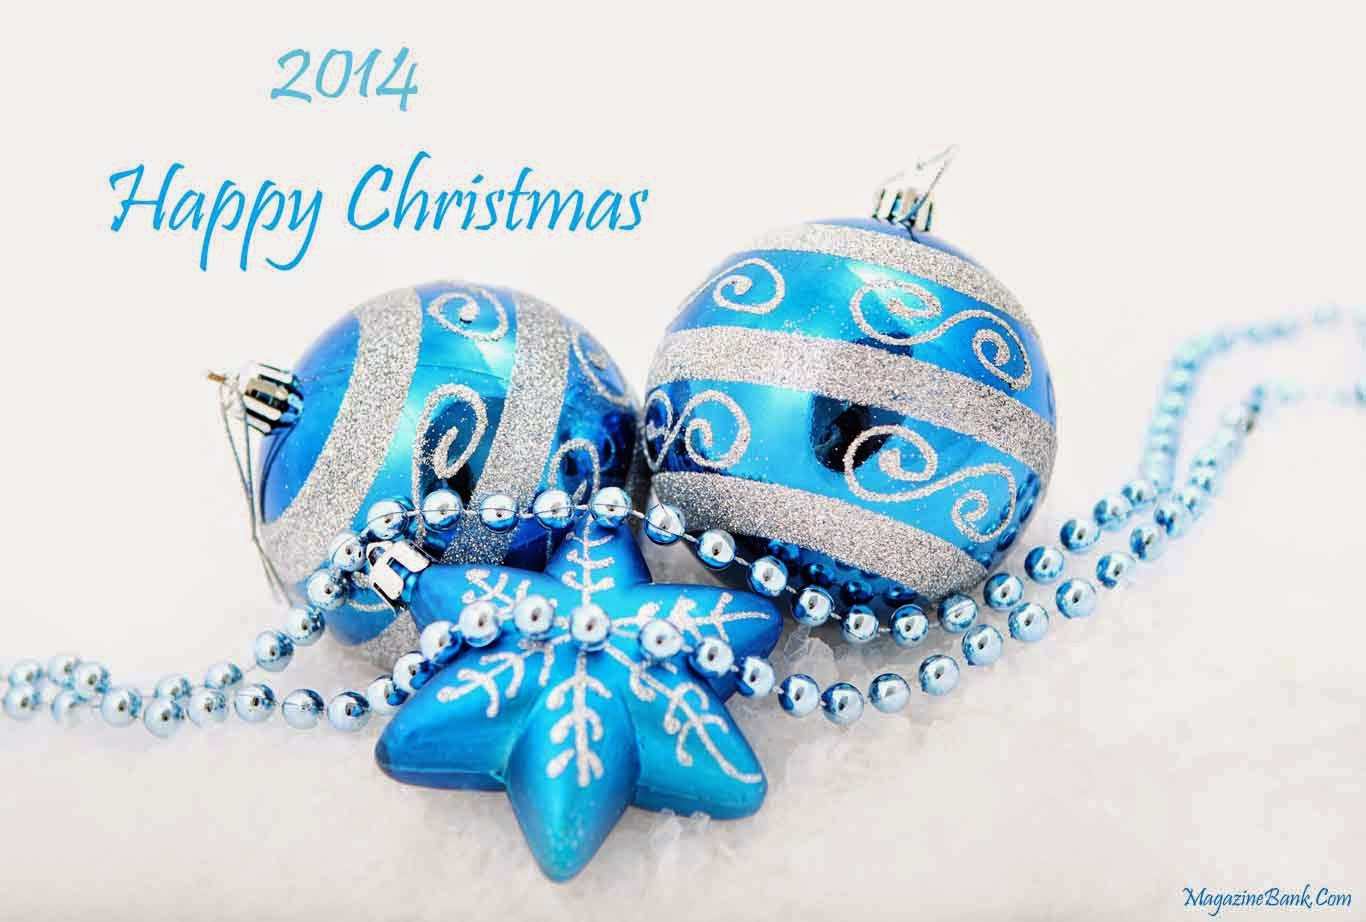 Happy Merry Christmas 2014 HD Wallpapers and Images